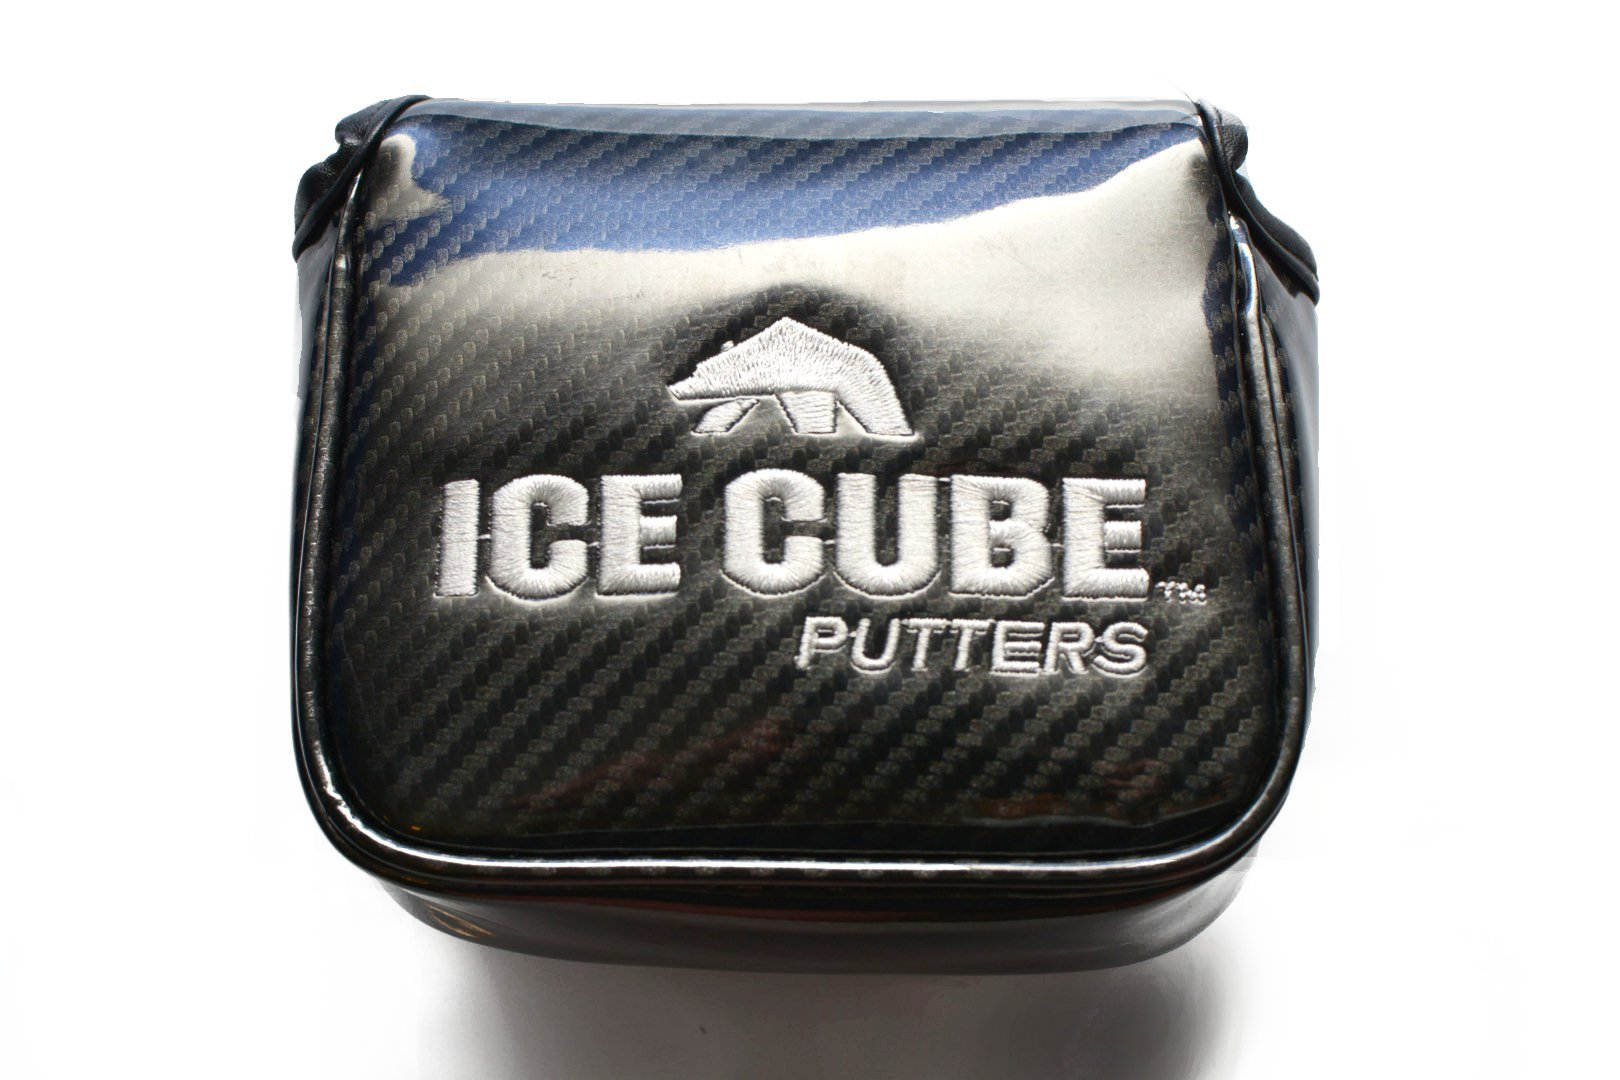 Ice Cube Putter, Standard Putter 35'', Right Hand Pro Golf Club (Mallet) Precision Putting and Green Placement | Tour Weighted, Face Balanced to USGA Standards | Adult | Includes Head Cover by Ice Cube Putters (Image #3)